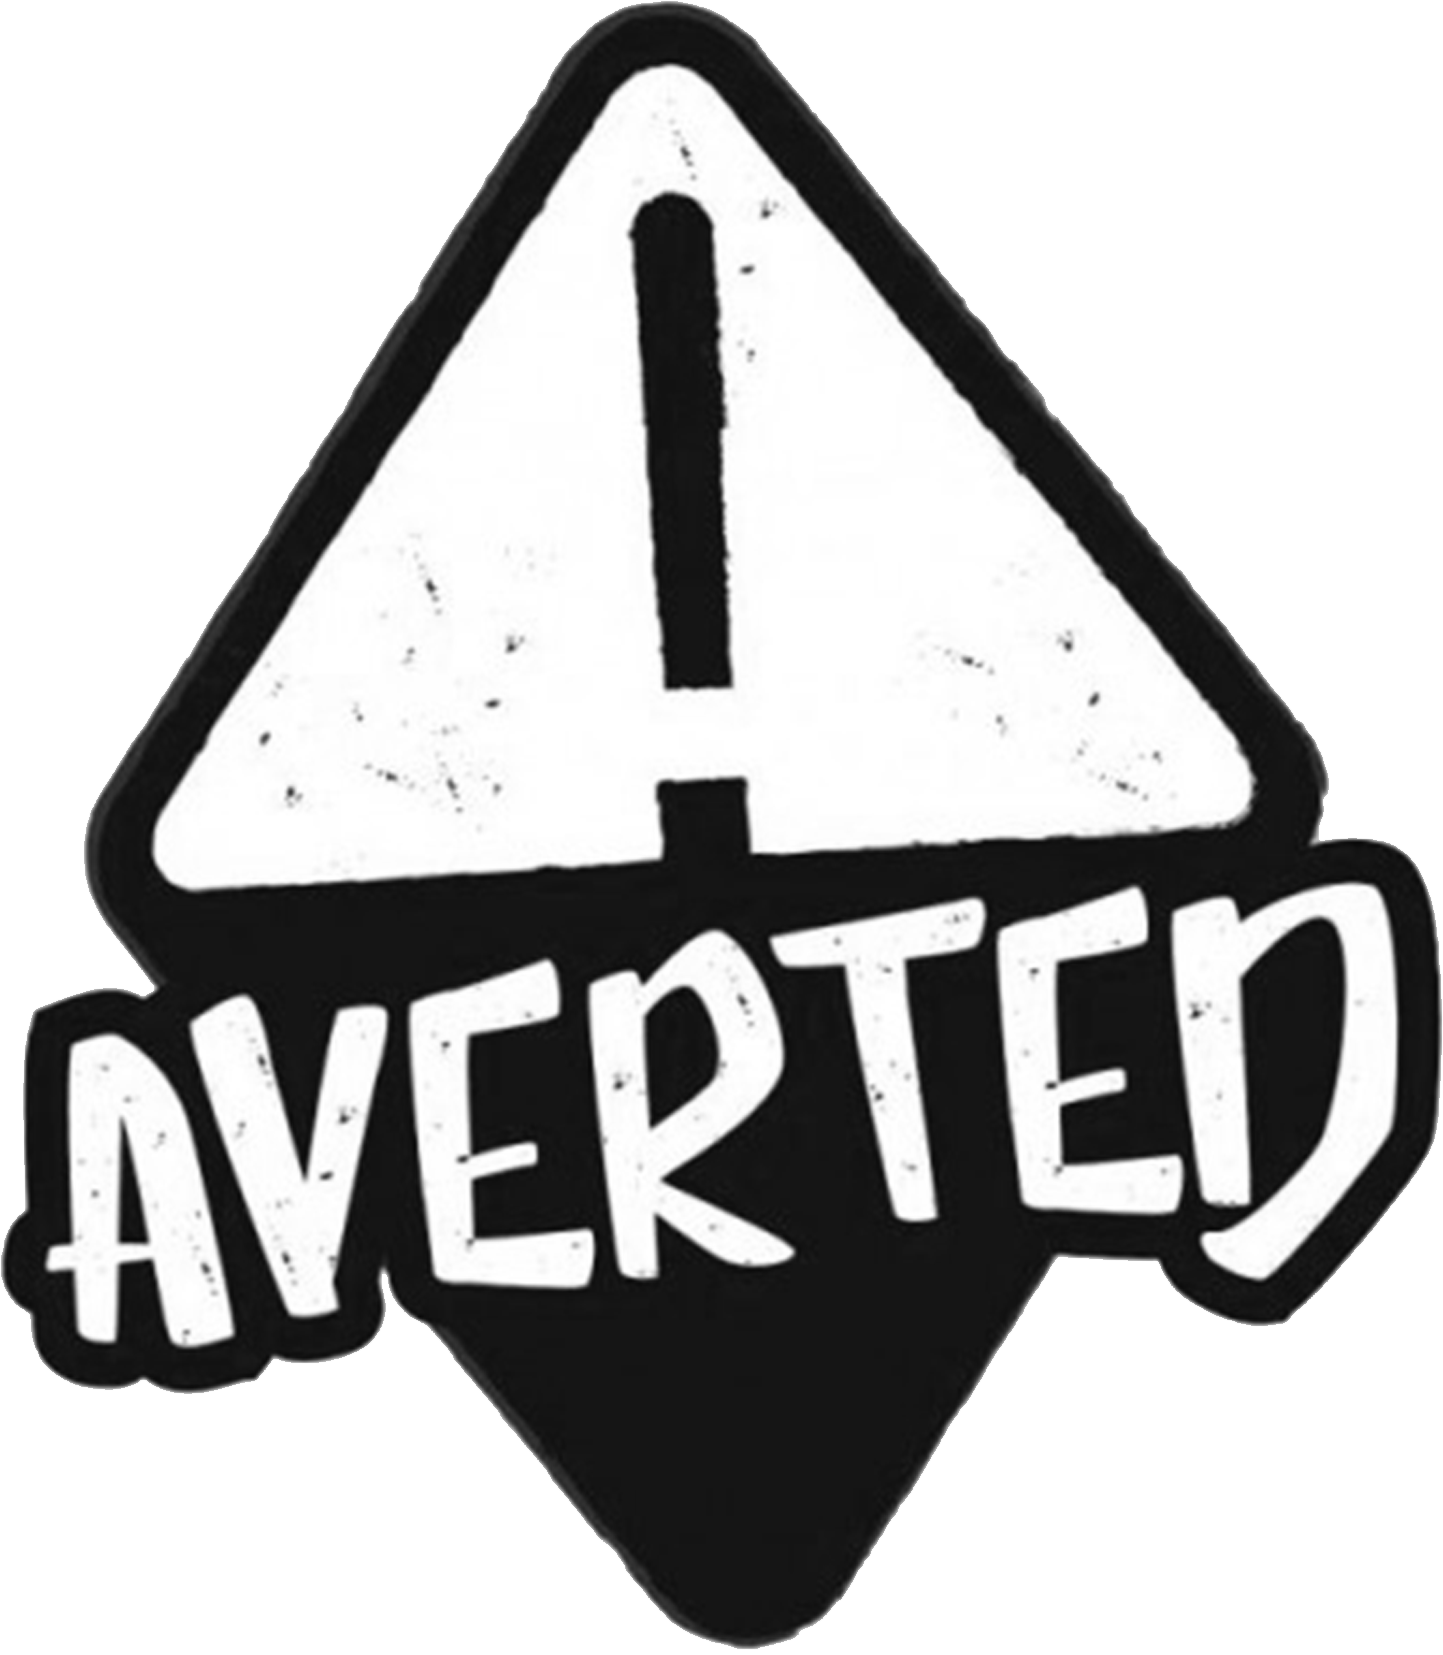 Averted! Disaster Simulation Game's logo